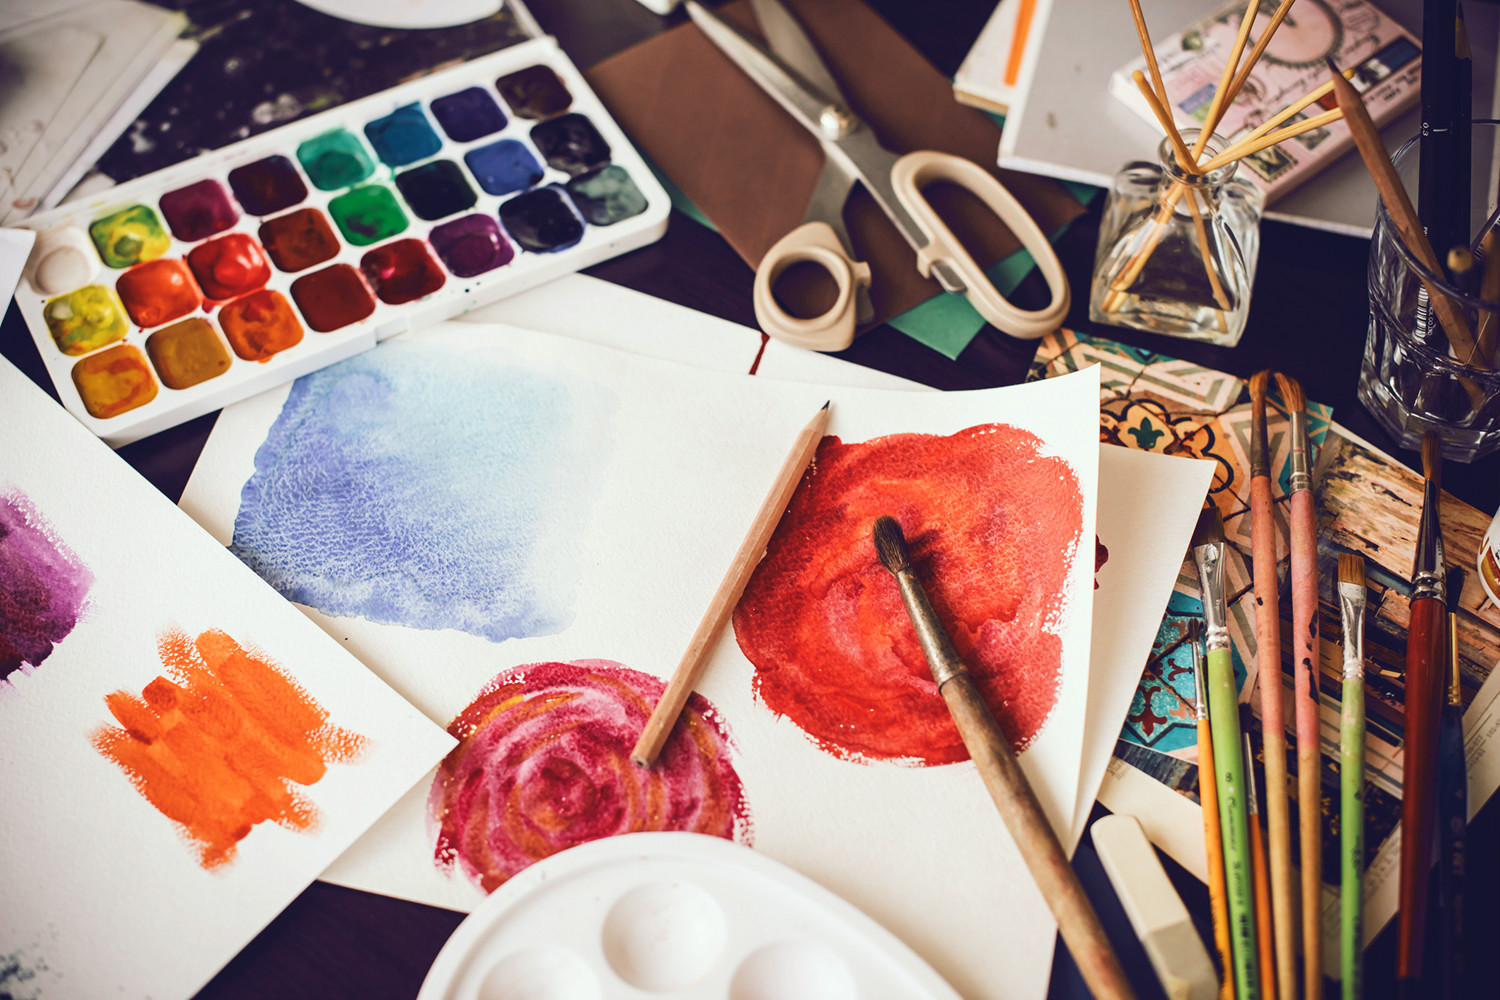 Hobbies to Bust Boredom